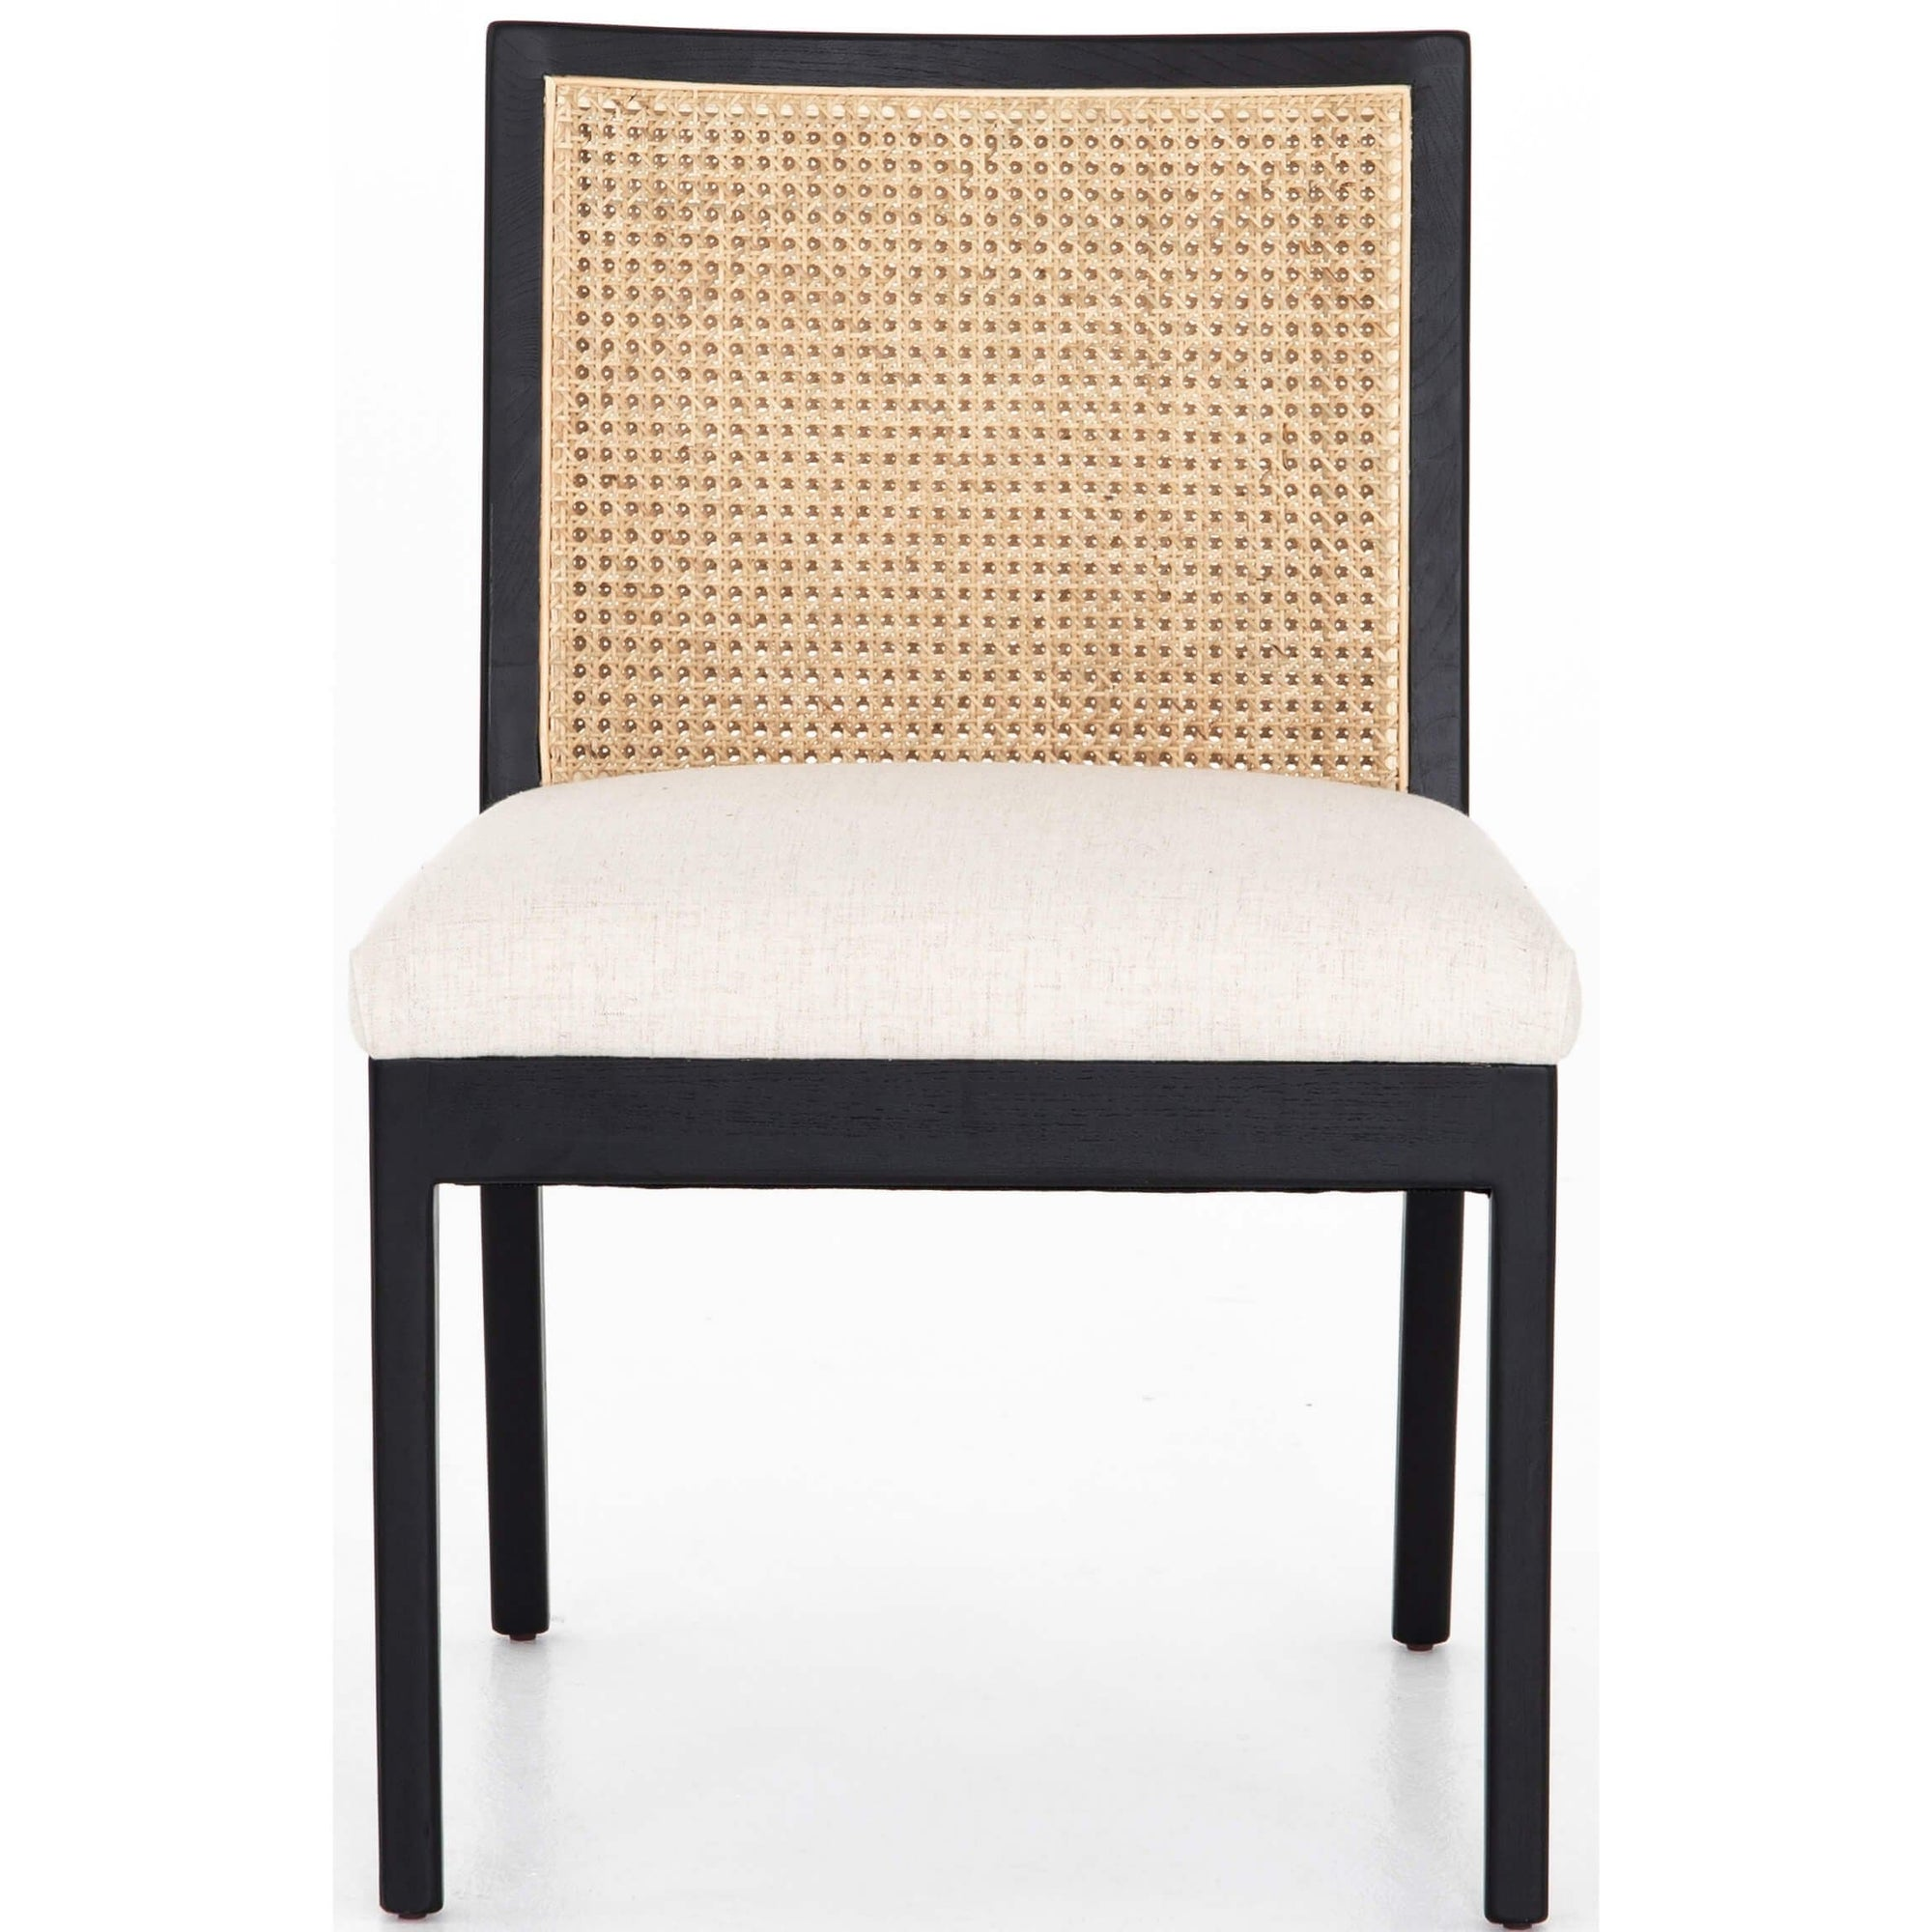 Excellent Antonia Cane Dining Chair High Fashion Home Ibusinesslaw Wood Chair Design Ideas Ibusinesslaworg